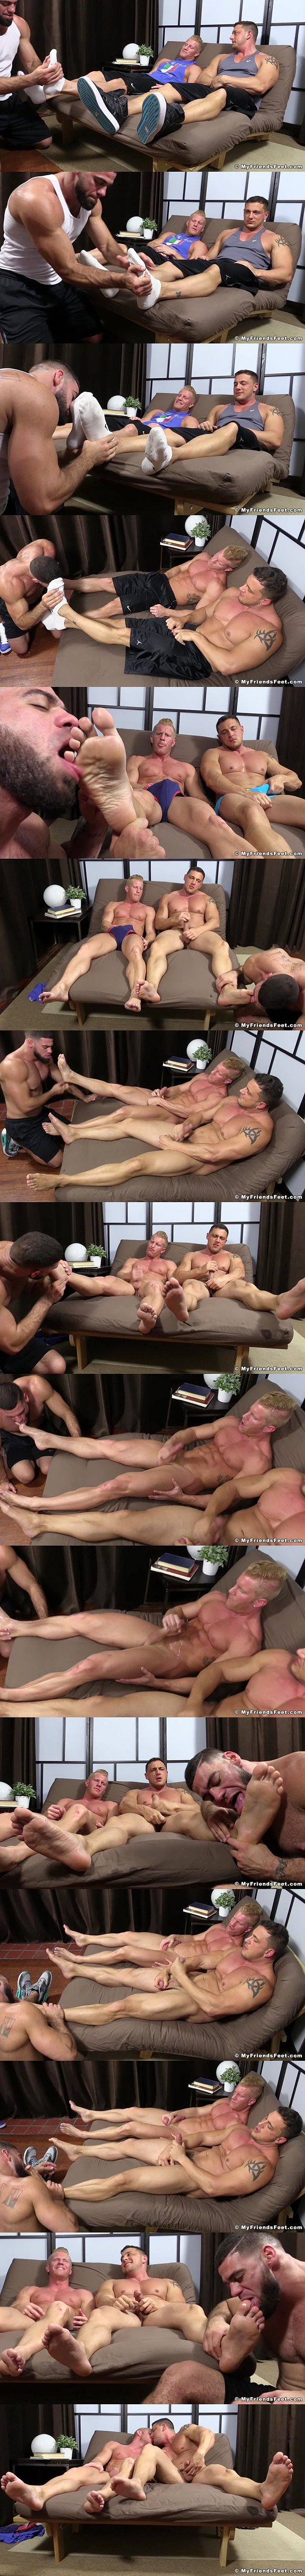 Ricky Larkin Worships muscle hunks Johnny V and Joey D's big feet until they blow their hot cum at Myfriendsfeet 02